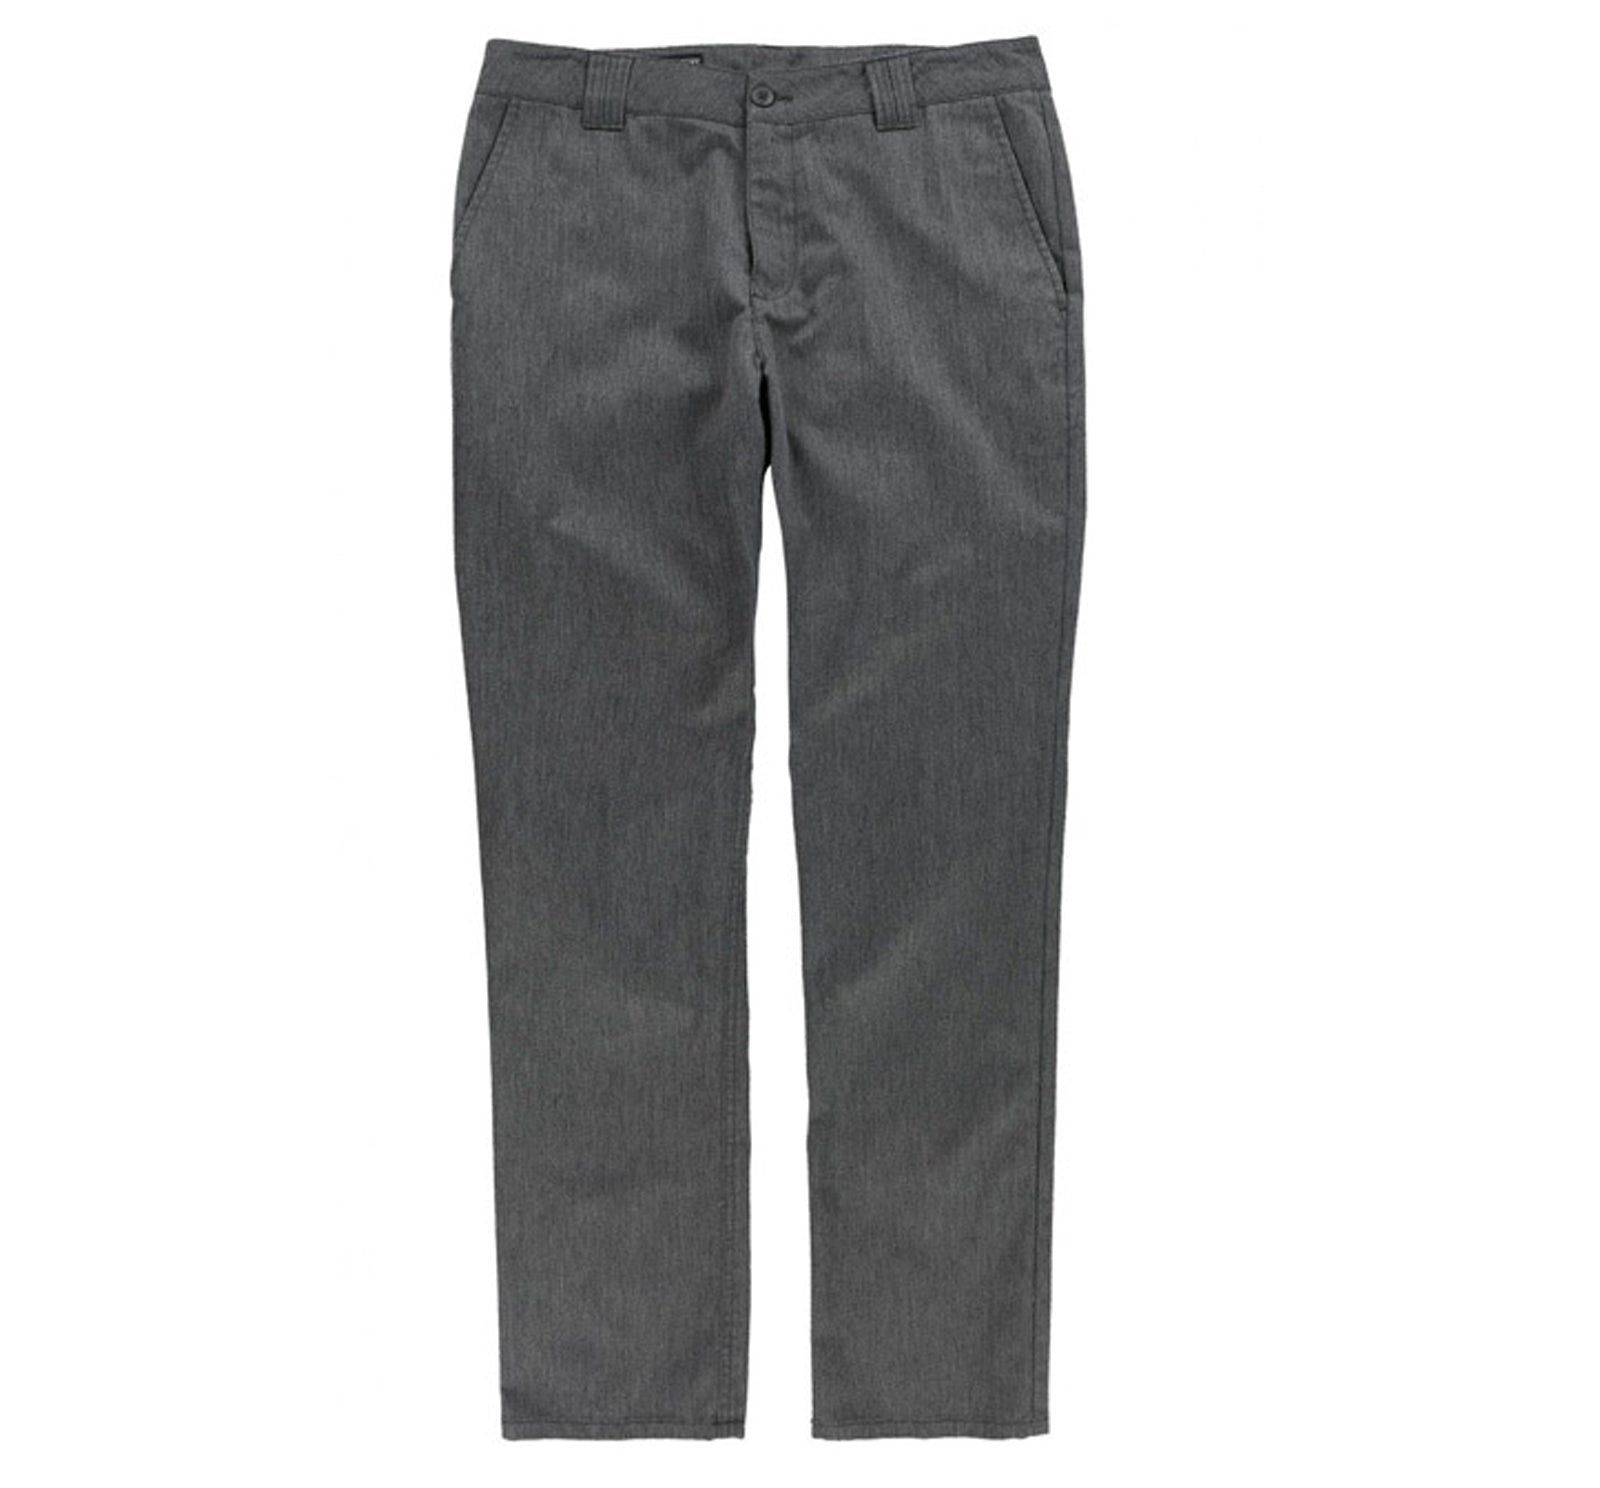 O'Neill Contact Straight Men's Pants